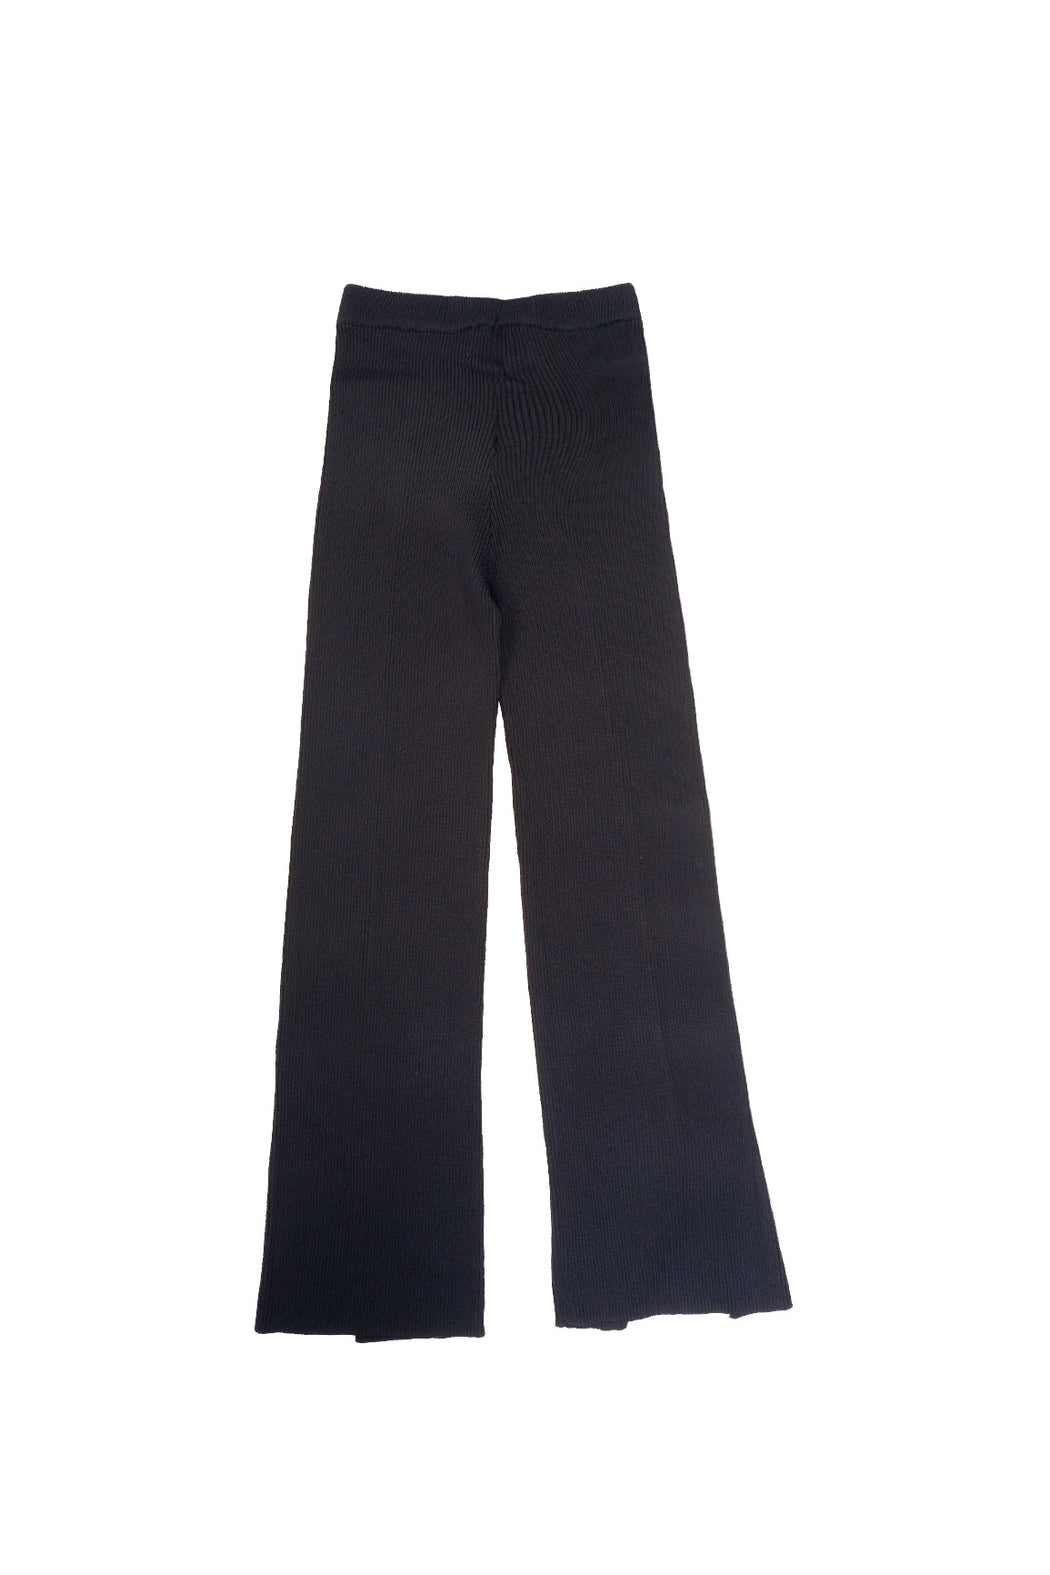 Slit Knit Trousers